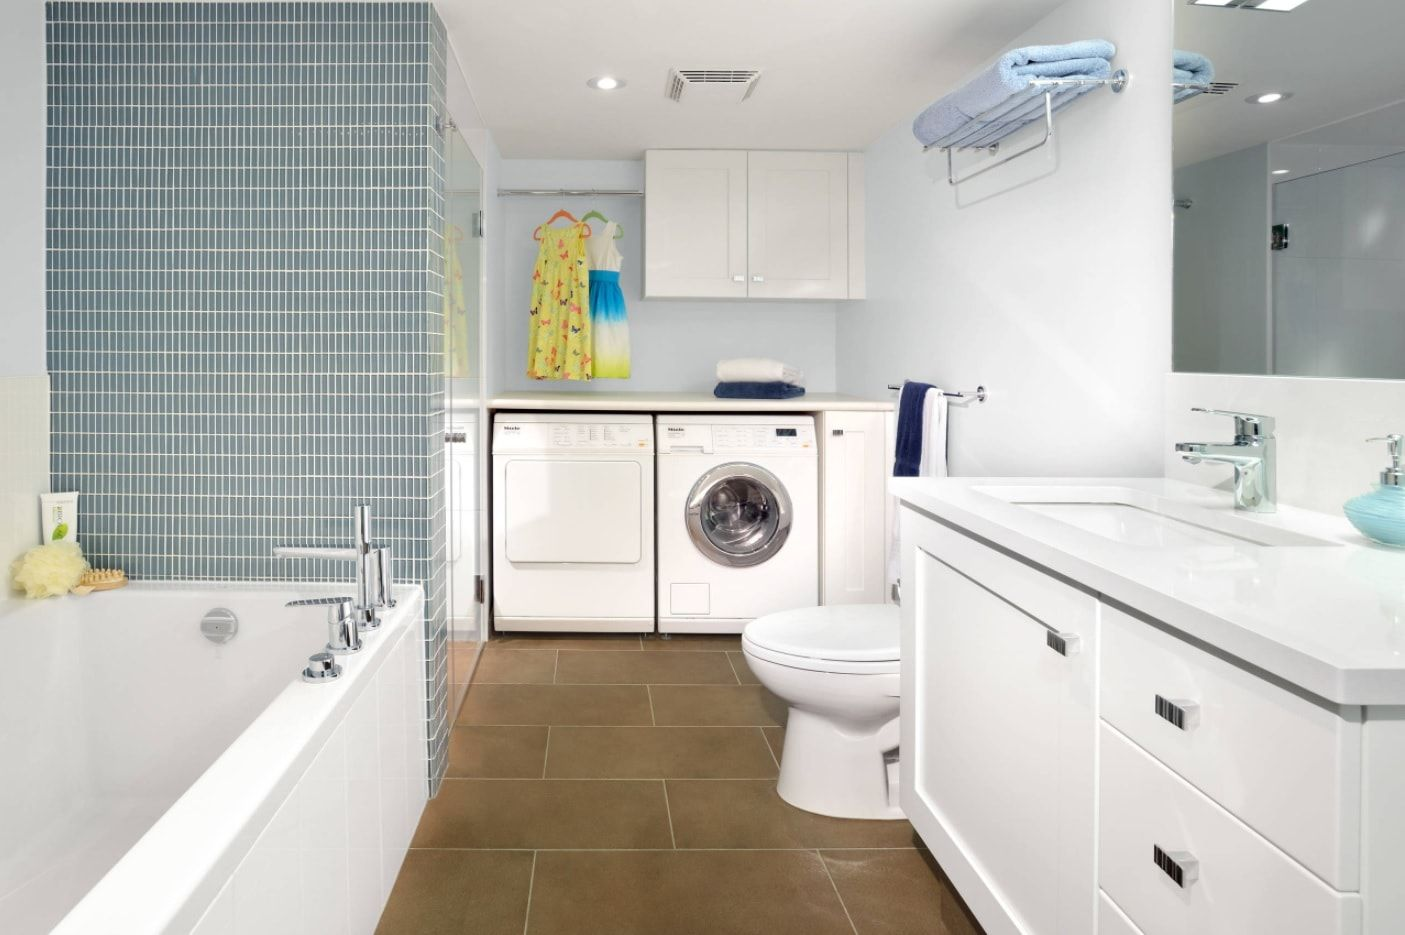 Multifunctional classic designed bathroom with built-in laundry